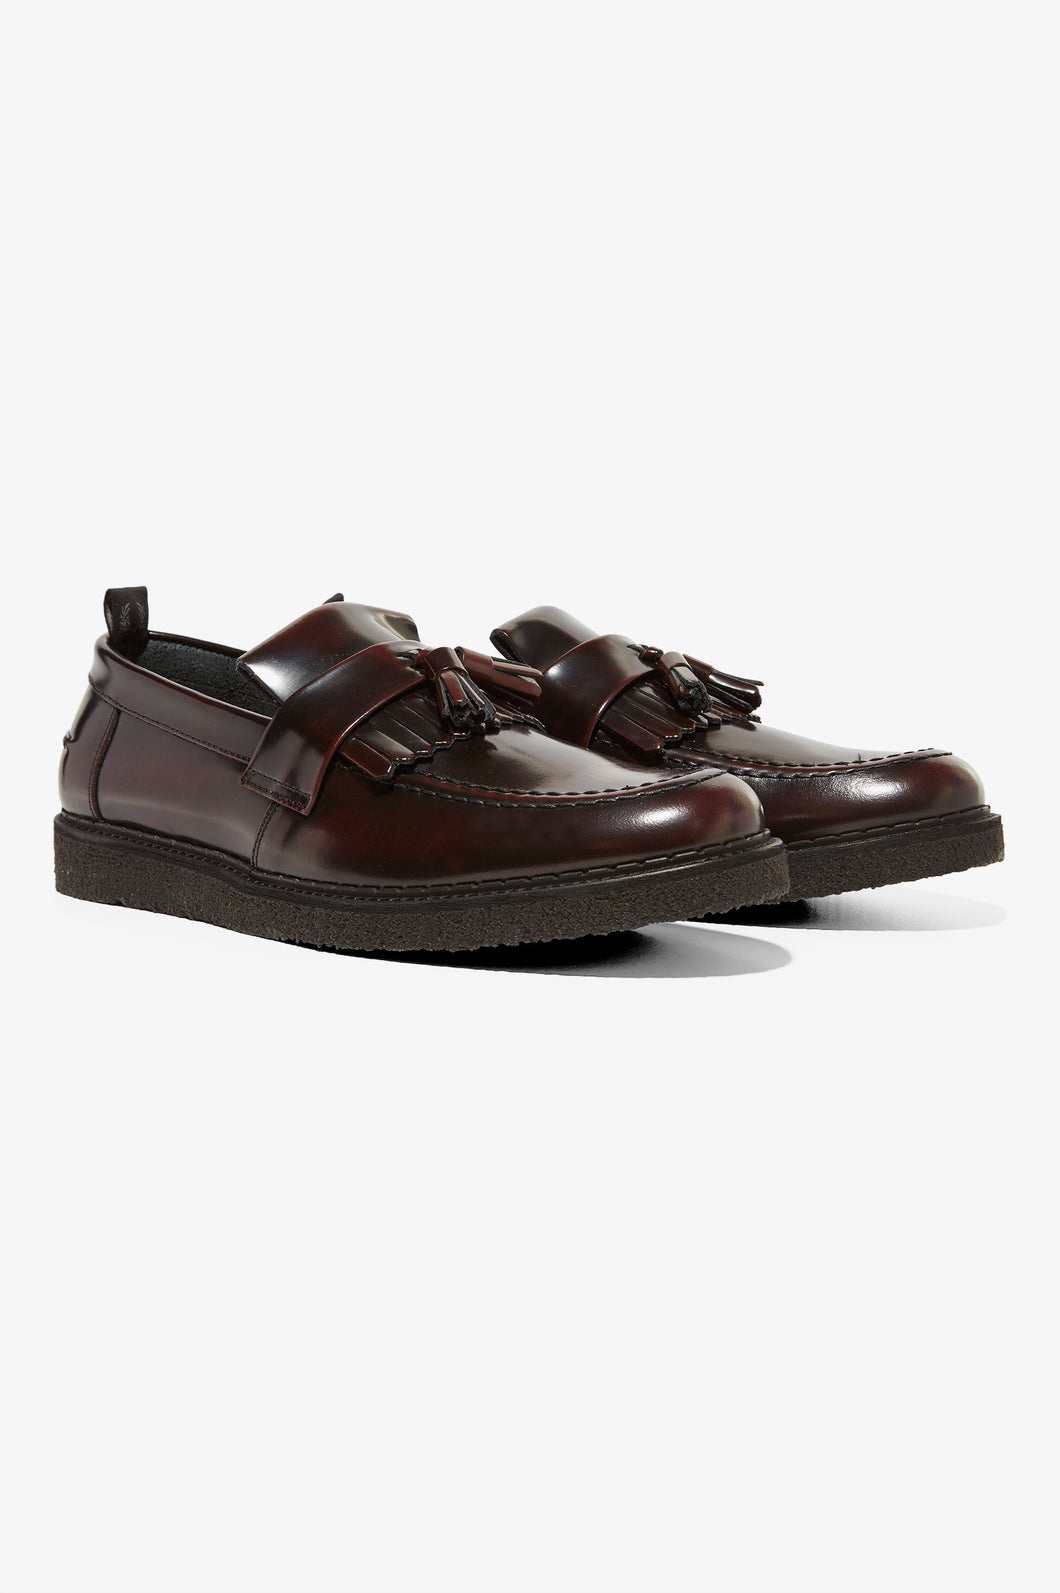 George Cox Tassel Loafer (ox blood)